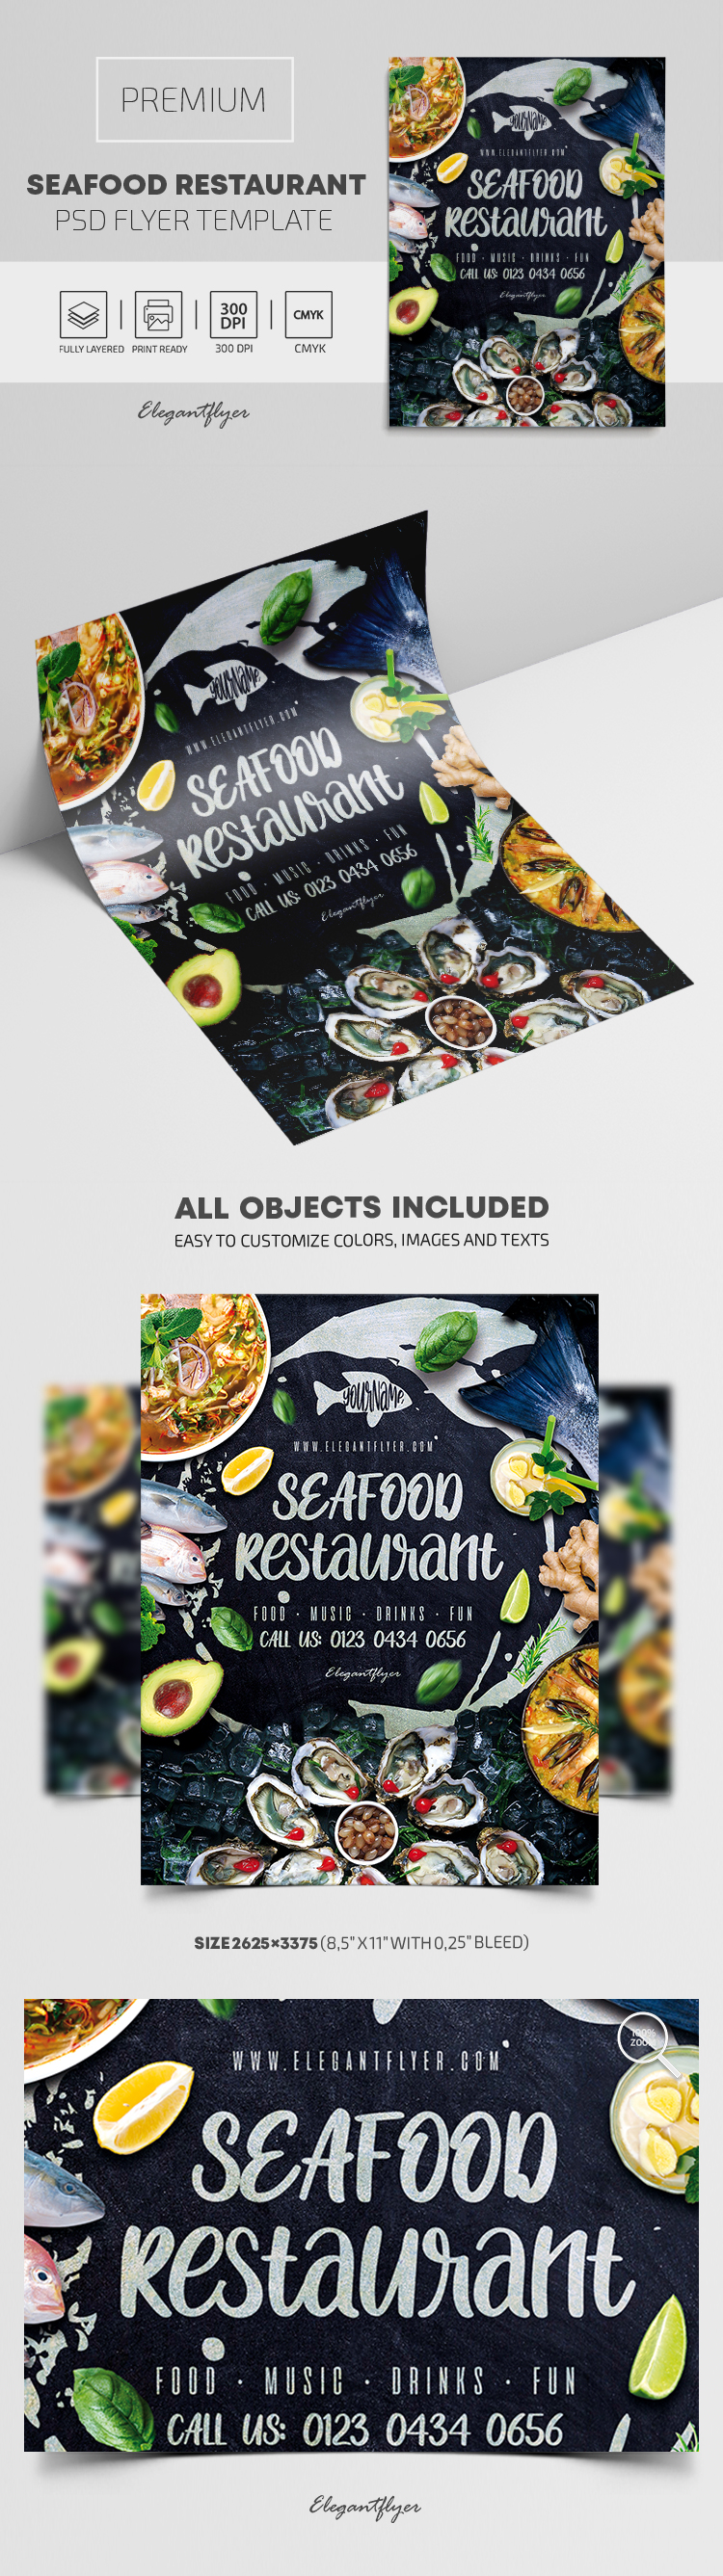 Seafood Restaurant – Premium PSD Flyer Template